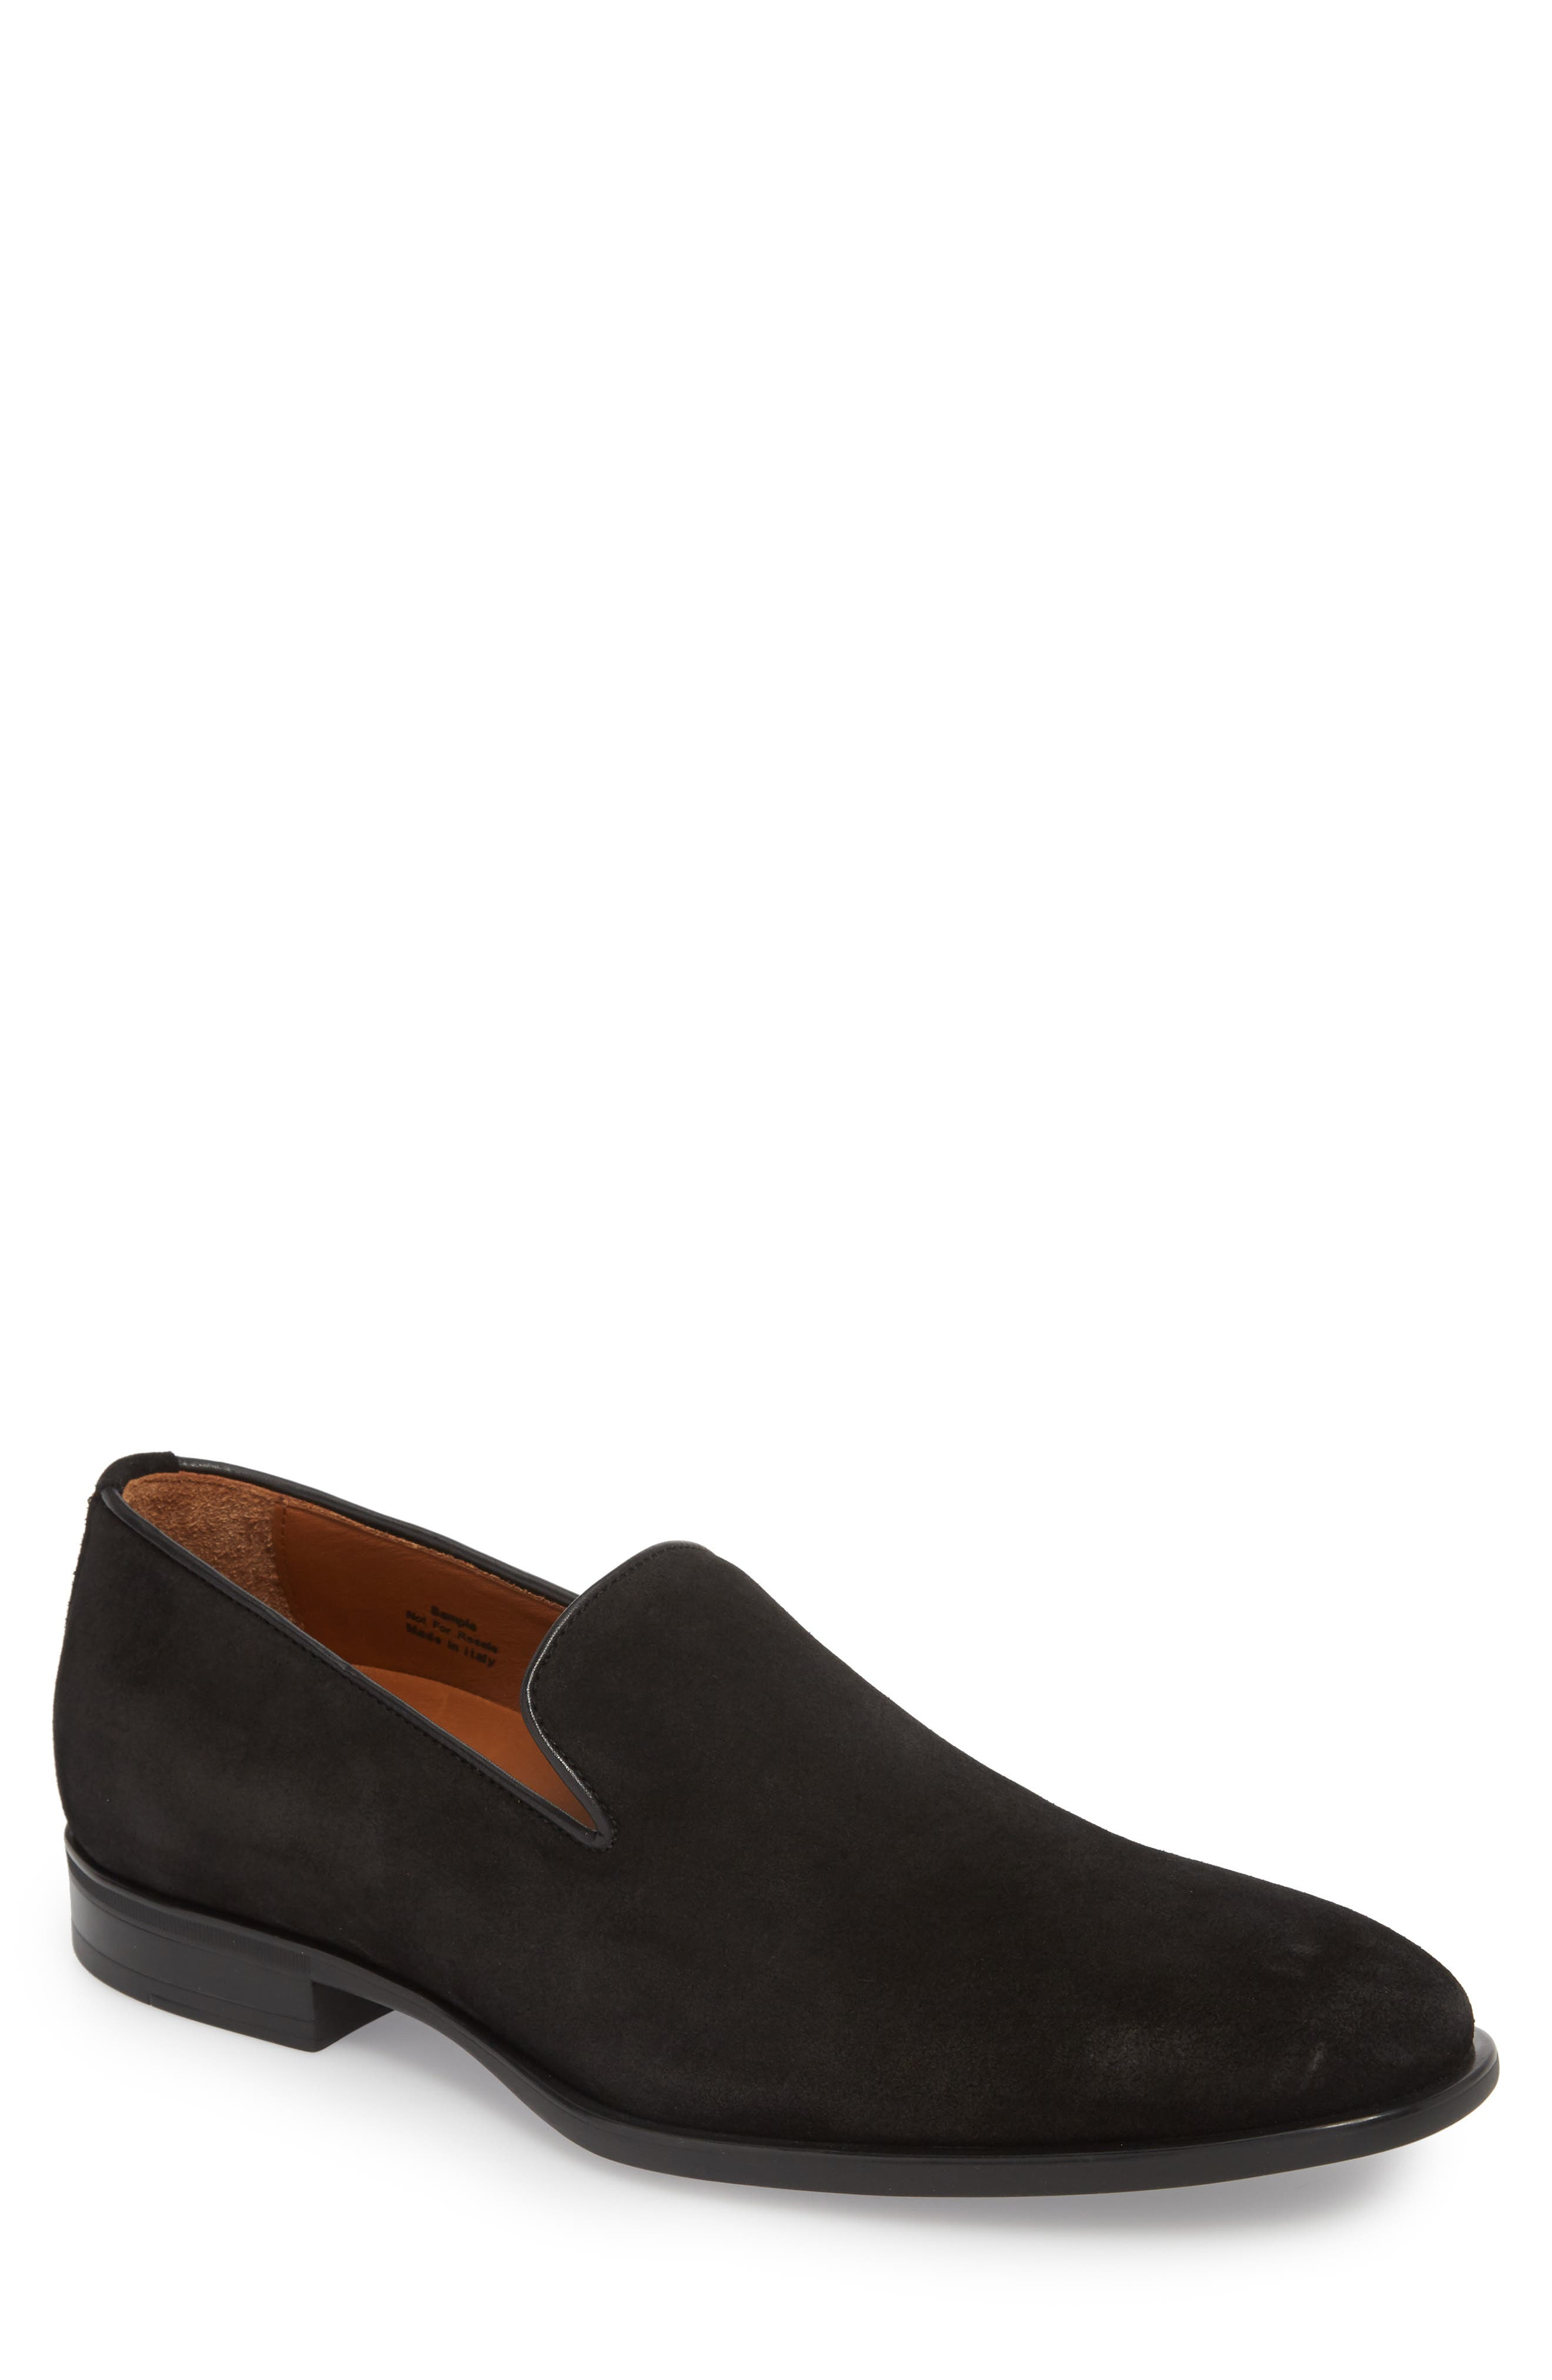 Aiden Venetian Loafer,                             Main thumbnail 1, color,                             Black